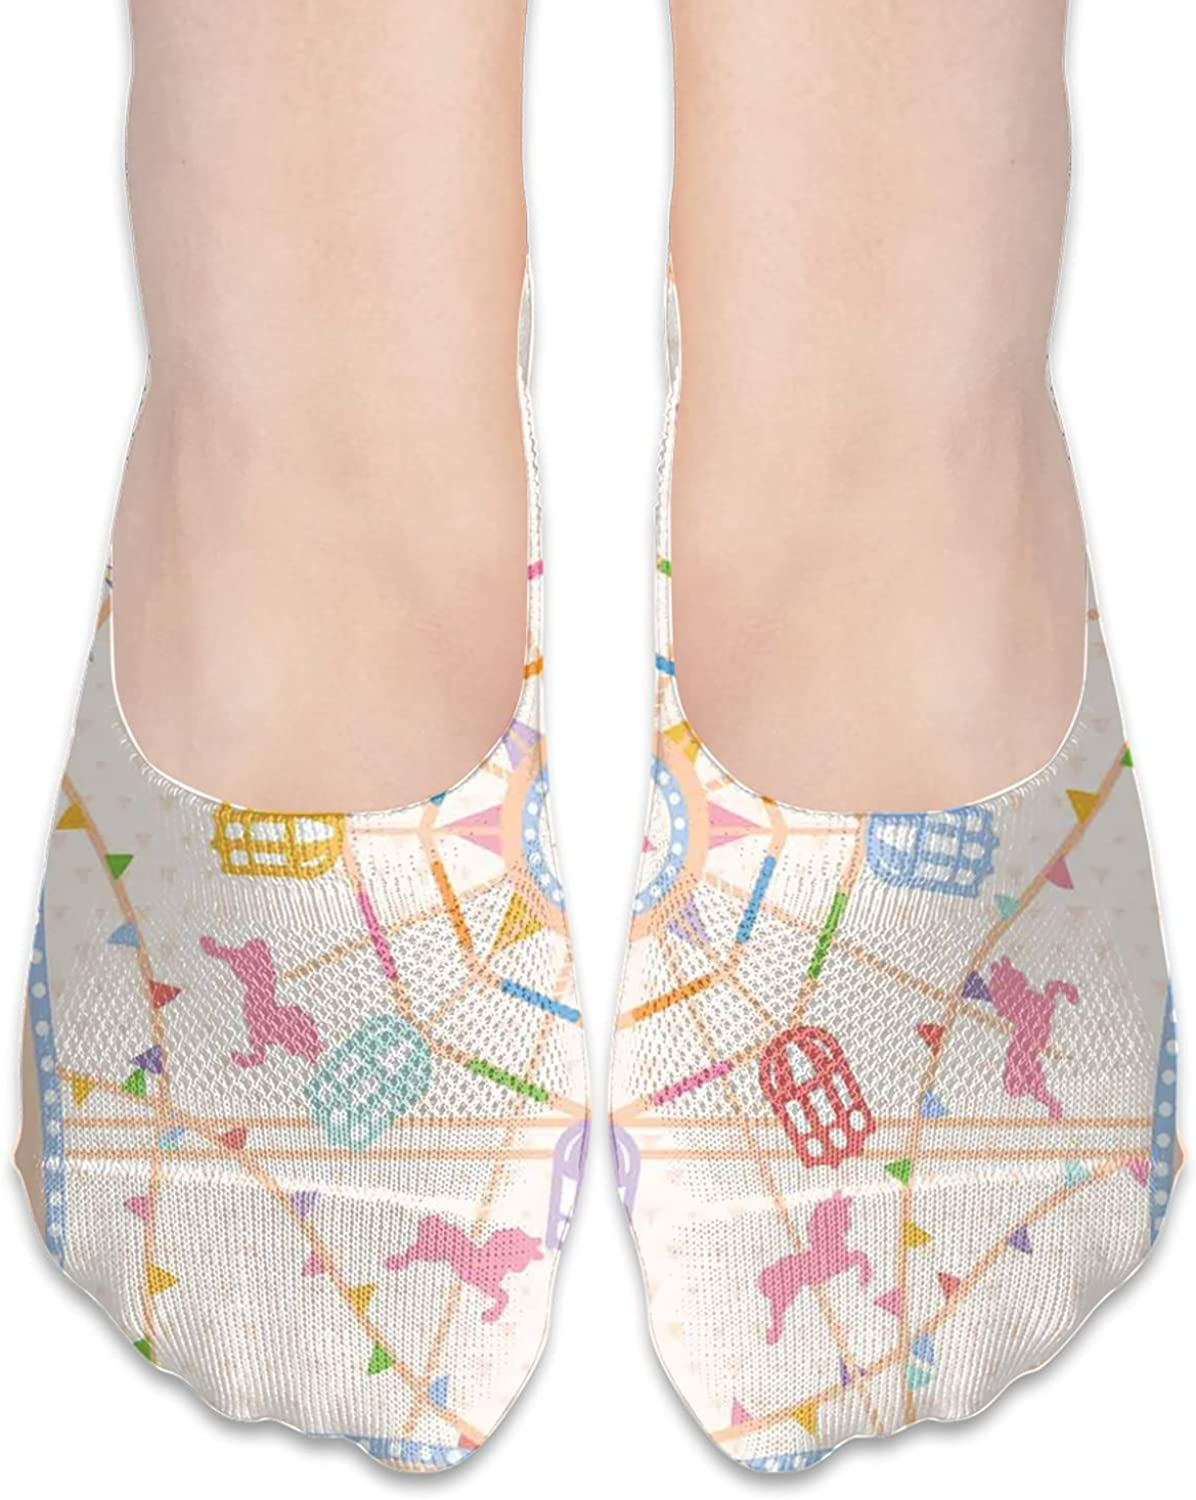 Women's No Show Cushioned Invisible Liner Socks